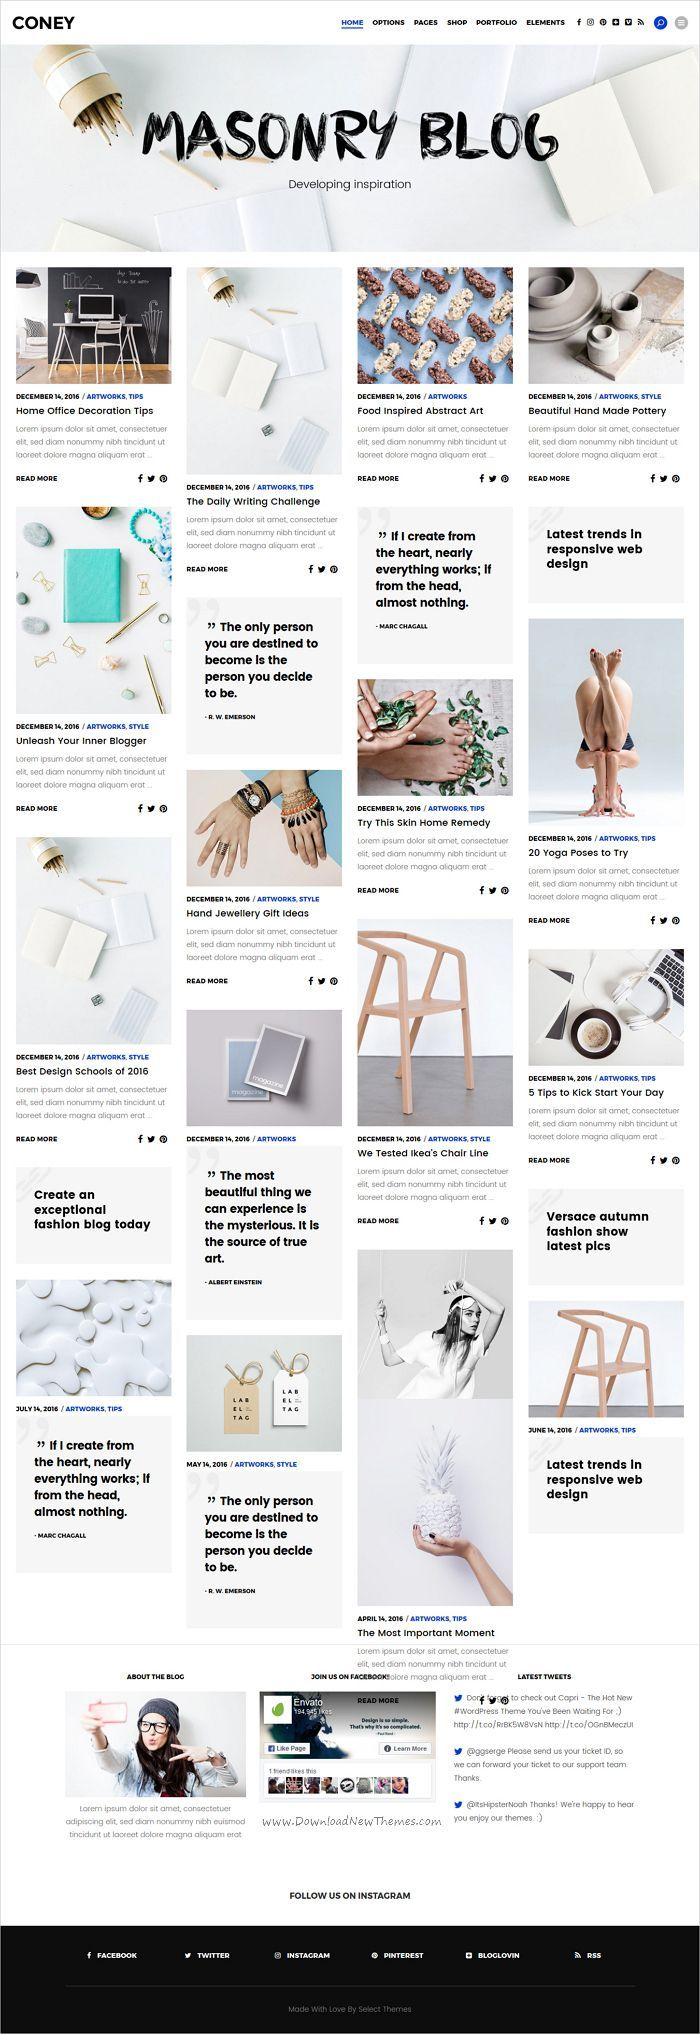 Coney is trendy and modern design responsive #WordPress #Pinterest style #blog theme for creative blogger and writers website with 12 distinct homepage layouts download now➩   https://themeforest.net/item/coney-a-trendy-theme-for-blogs-and-magazines/19306672?ref=Datasata